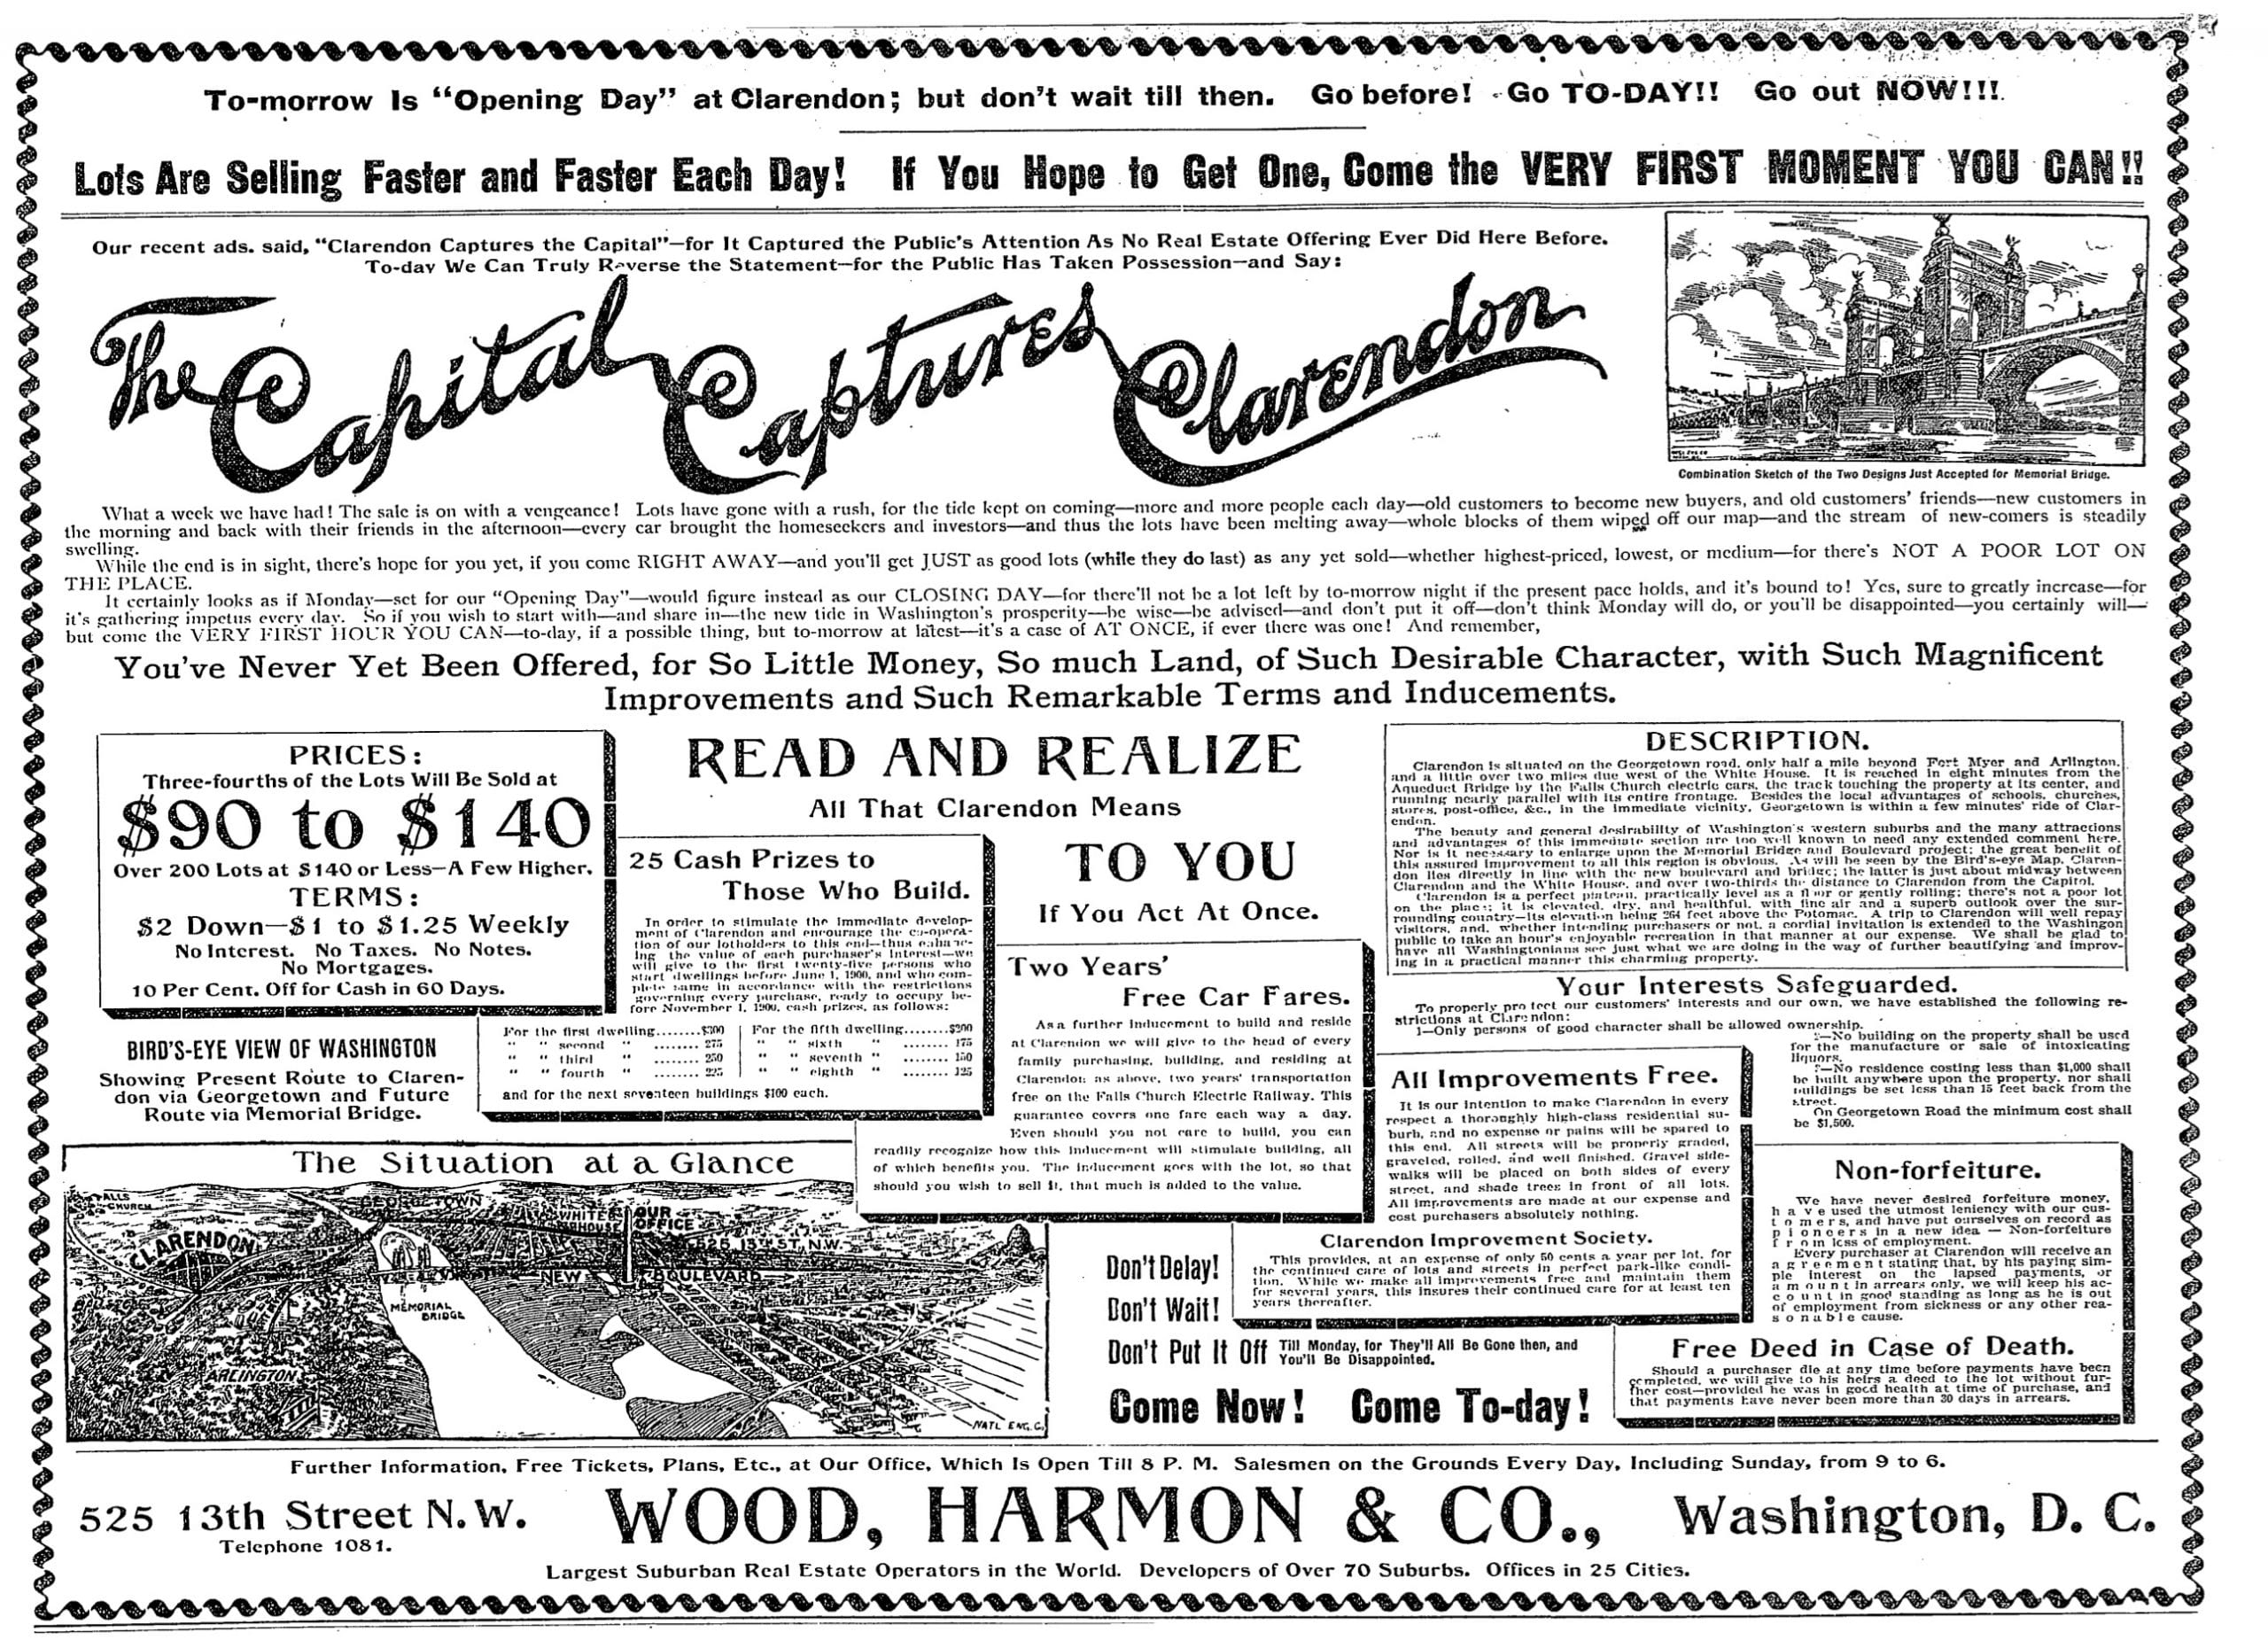 Washington Post advertisement for Clarendon real estate on April 22nd, 1900